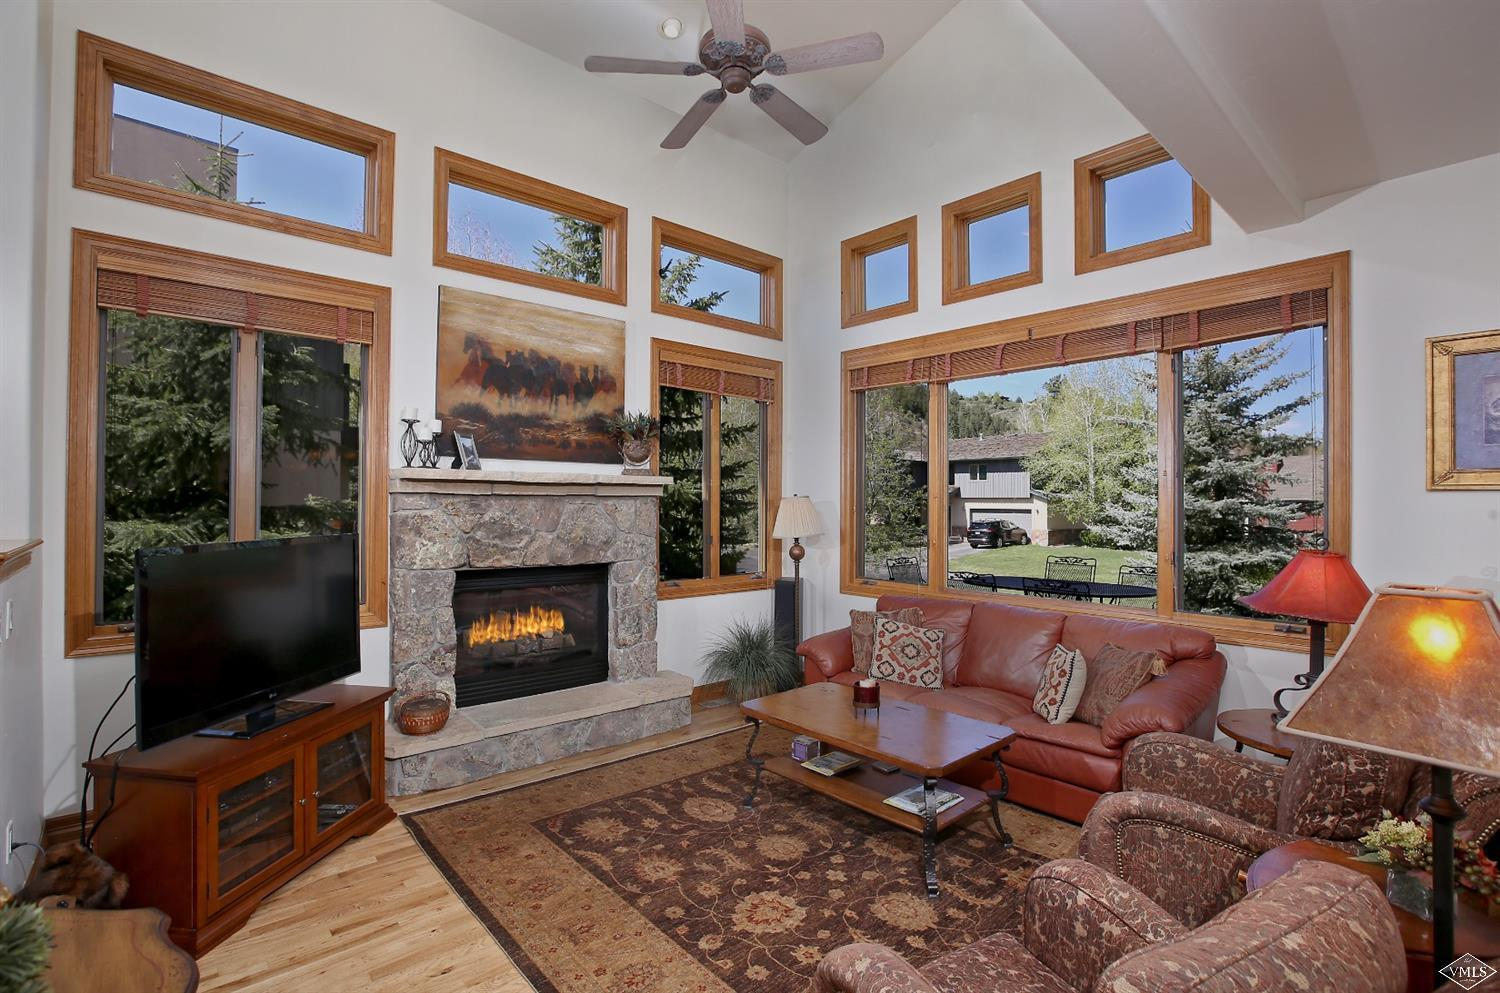 Steps from the Eagle River in a park-like setting, this home offers easy access to downtown Edwards and Arrowhead from a quiet cul-de-sac. The great room with oversized windows and fireplace overlooks the spacious deck and yard. Master suite privacy created with separate deck and double-sided fireplace warmly connecting the bedroom with its 5-piece bath. Large bedrooms including a 4th currently used as a main level office. Mud room, 2-car garage, dining room, vaulted ceilings and own driveway.